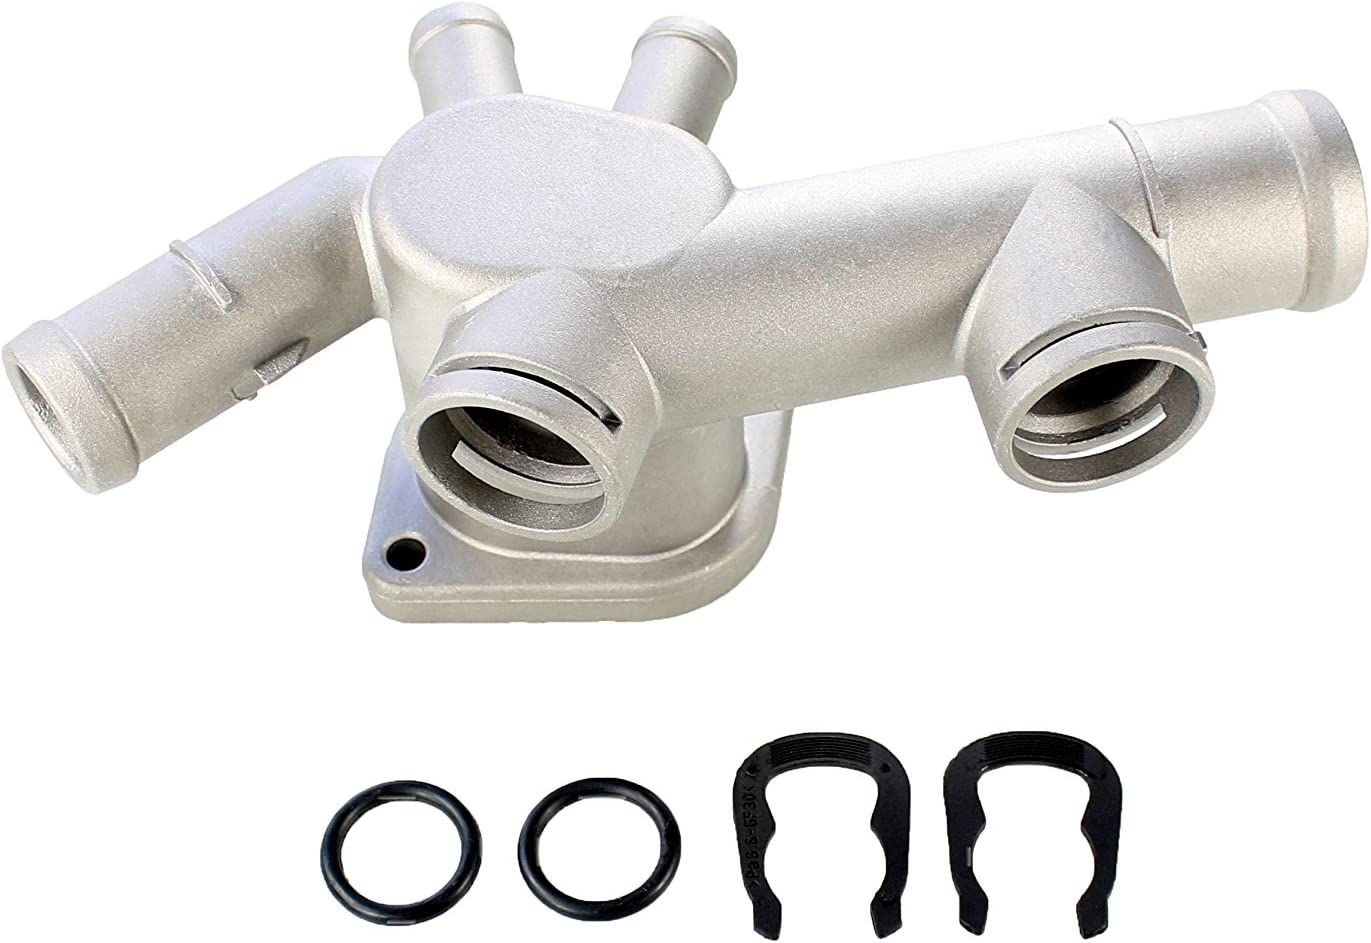 1998-2005 VW Volkswagen Beetle 2.0 Coolant Flange WITH Clip /& O-Ring GENUINE OEM